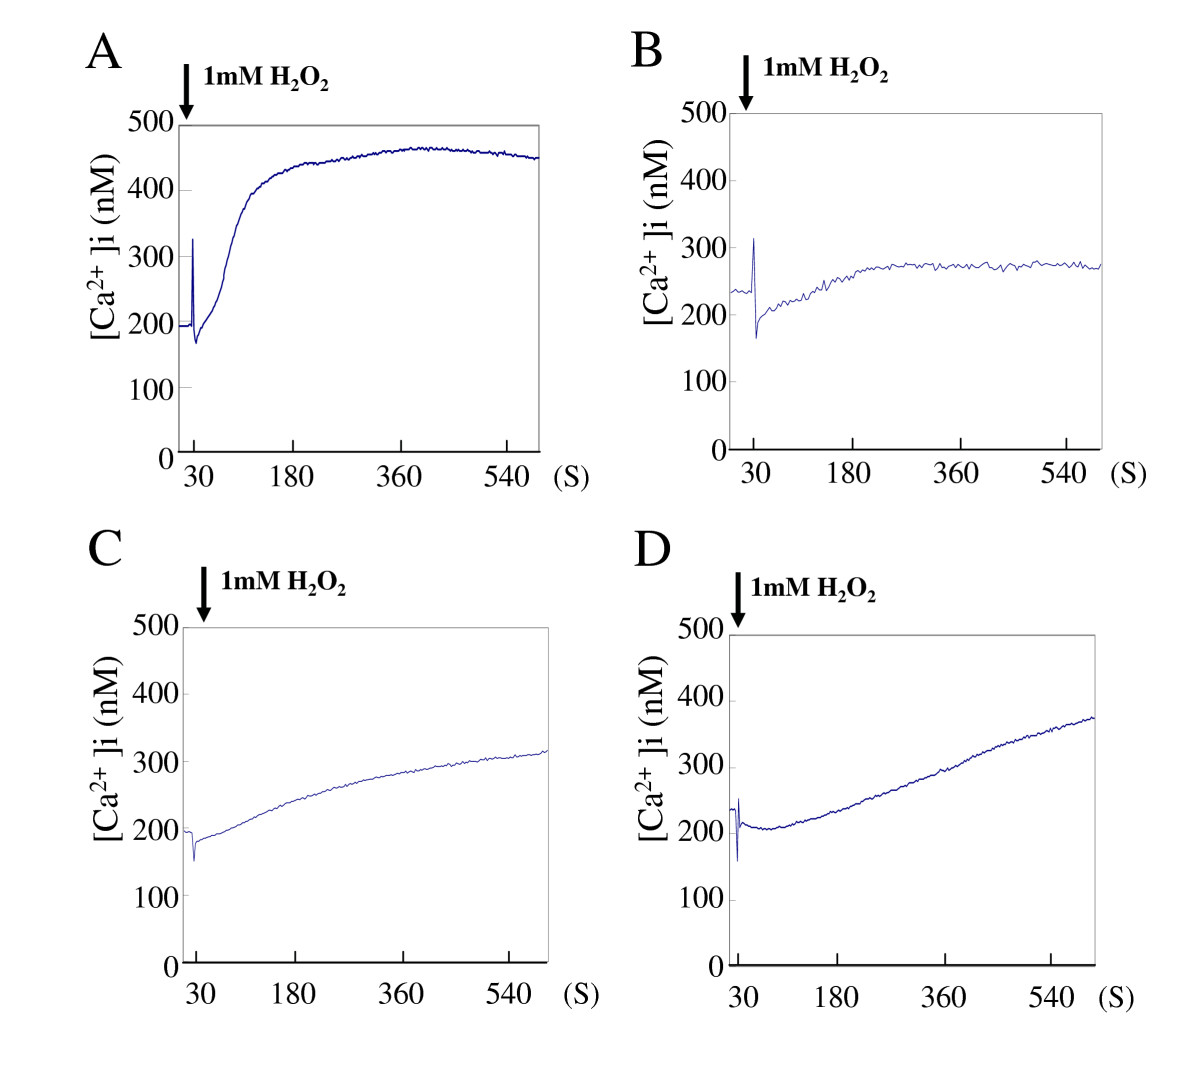 http://static-content.springer.com/image/art%3A10.1186%2F1743-422X-3-62/MediaObjects/12985_2006_Article_169_Fig2_HTML.jpg